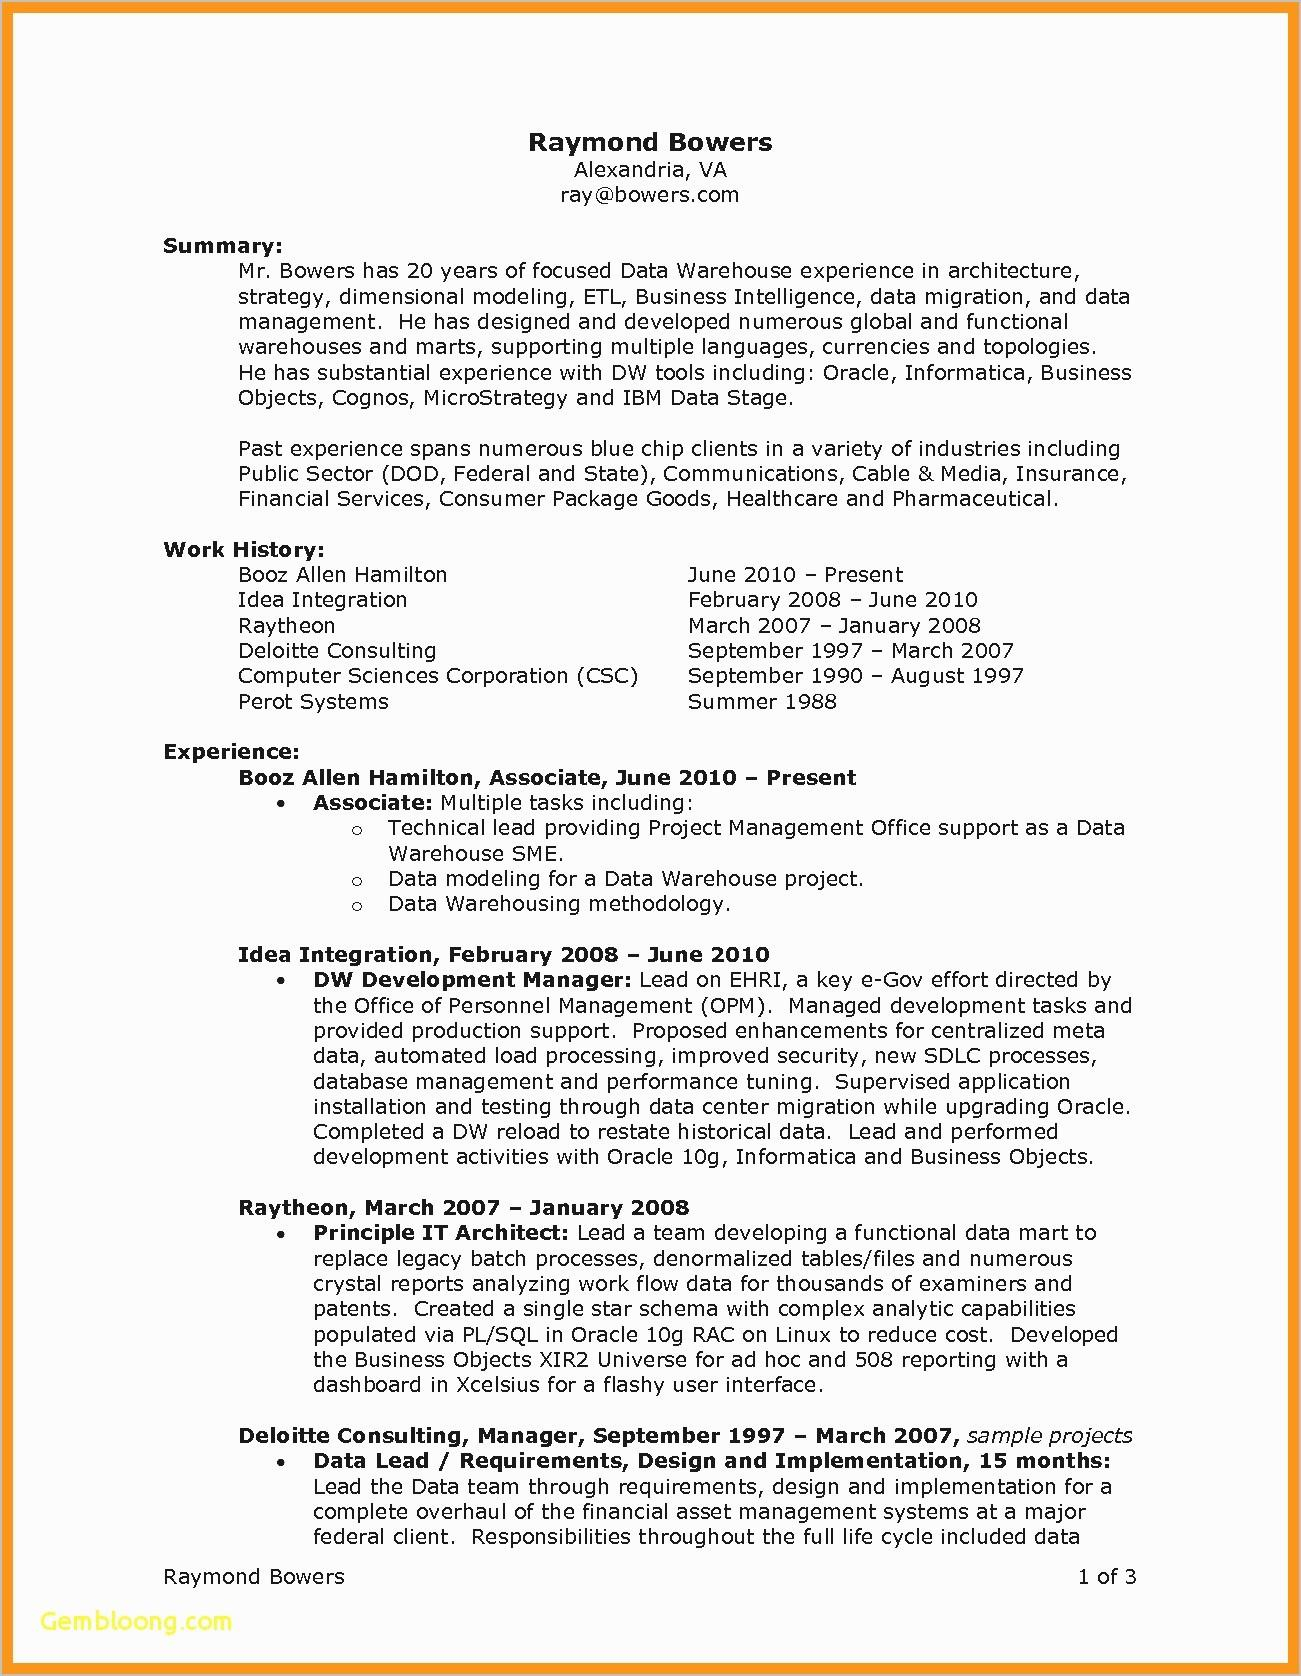 food service resume template example-Resume Samples for Food Service Elegant Elegant Grapher Resume Sample Beautiful Resume Quotes 0d Restaurant 19-a